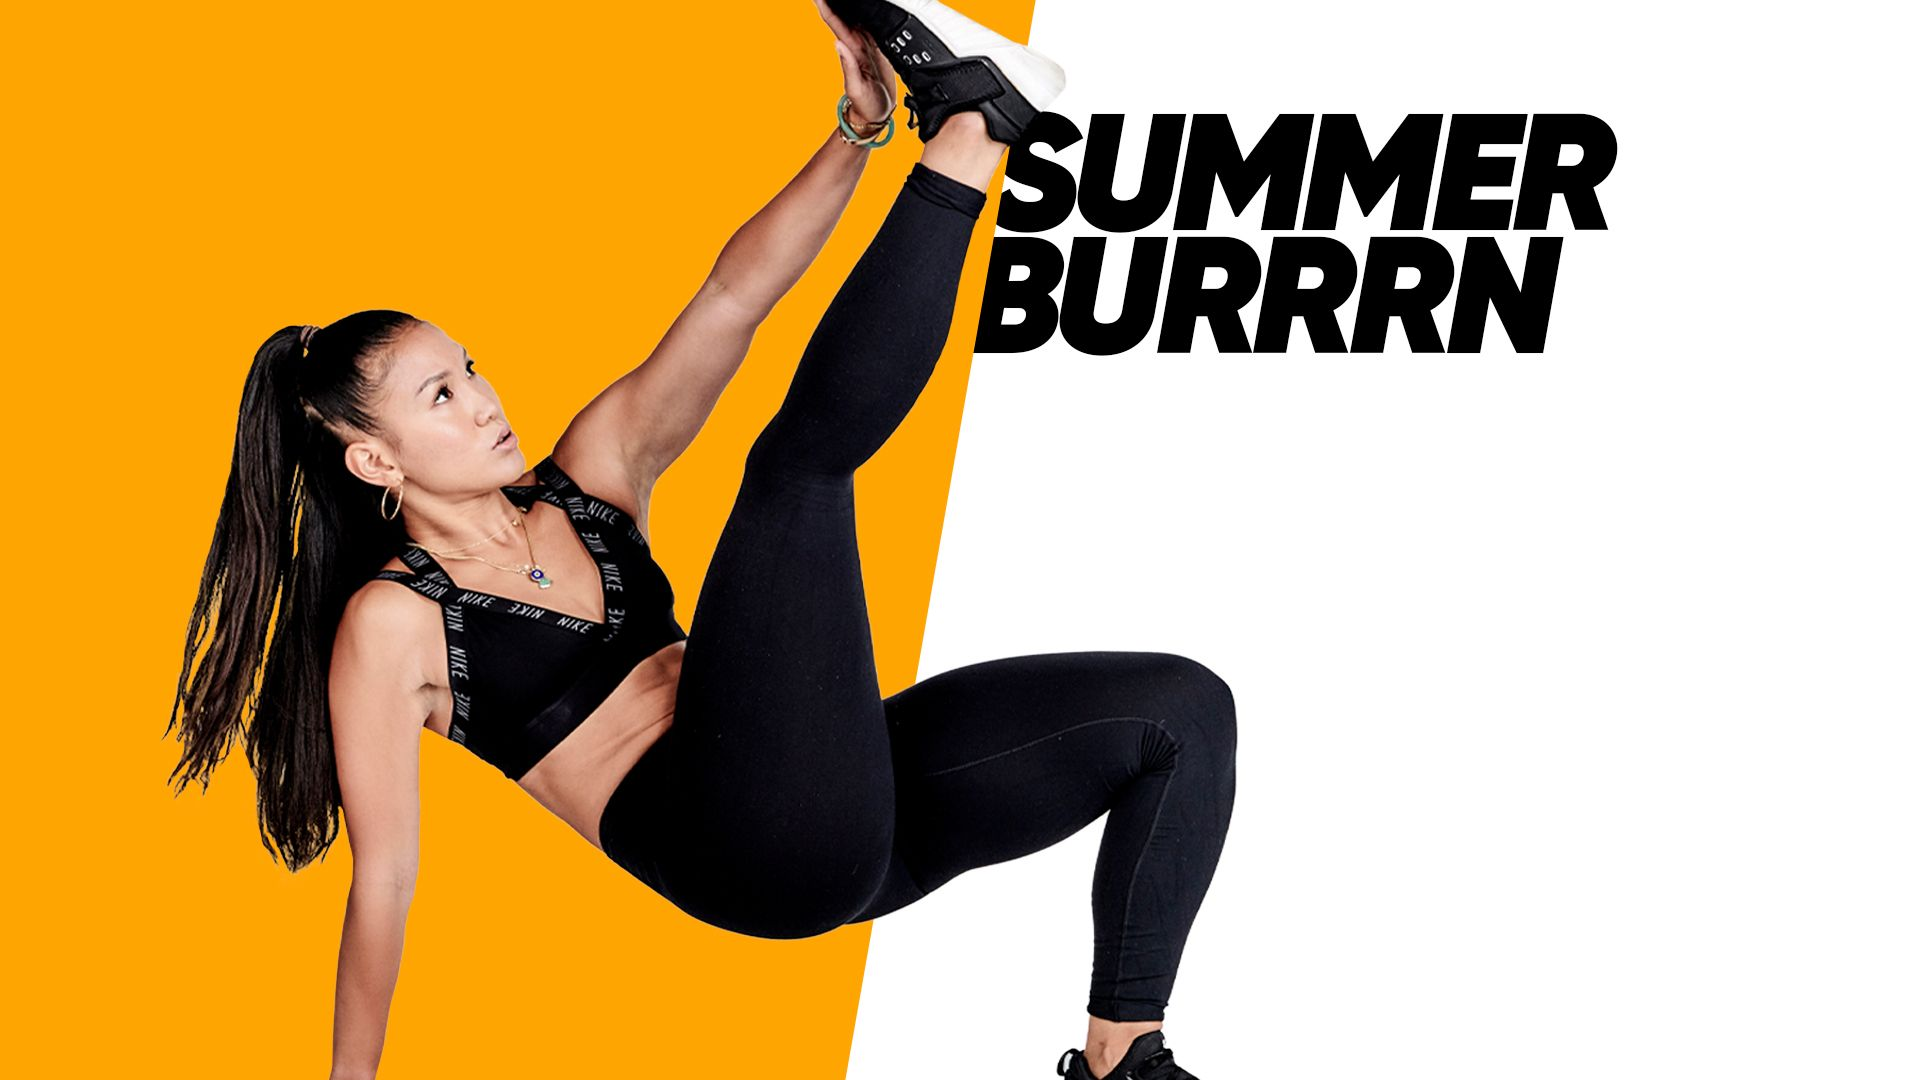 The Summer Burrrn Challenge: What's in it for you?